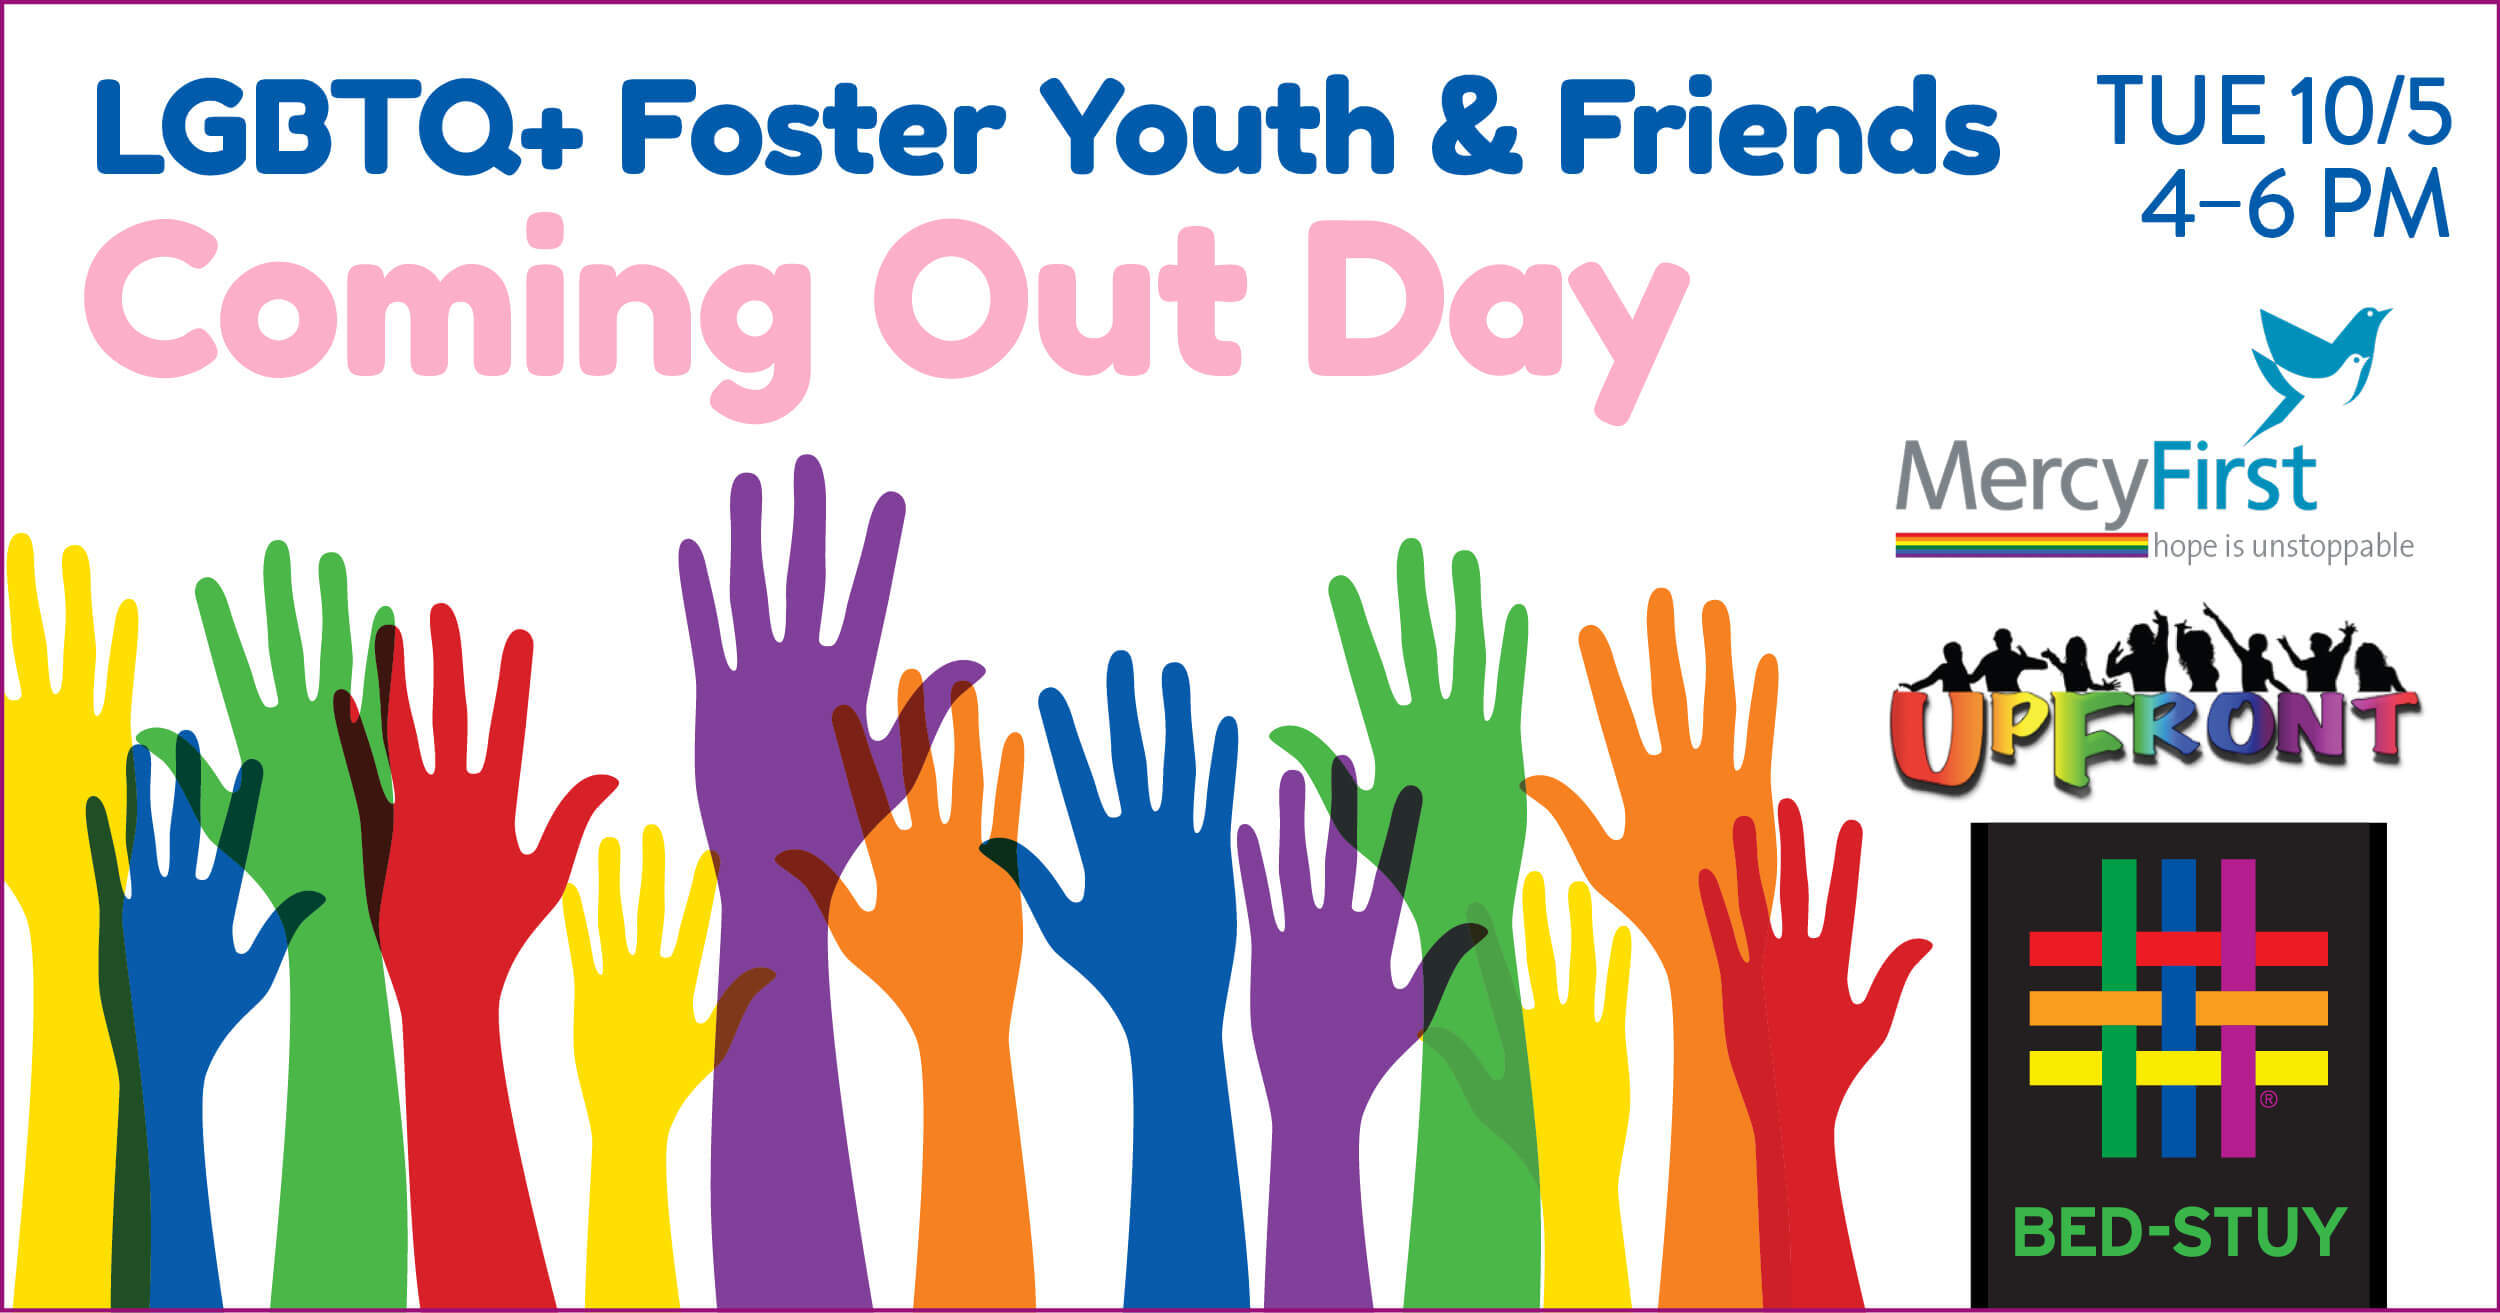 LGBTQ+ Foster Youth and Friends Coming Out Day at Brooklyn Community Pride Center